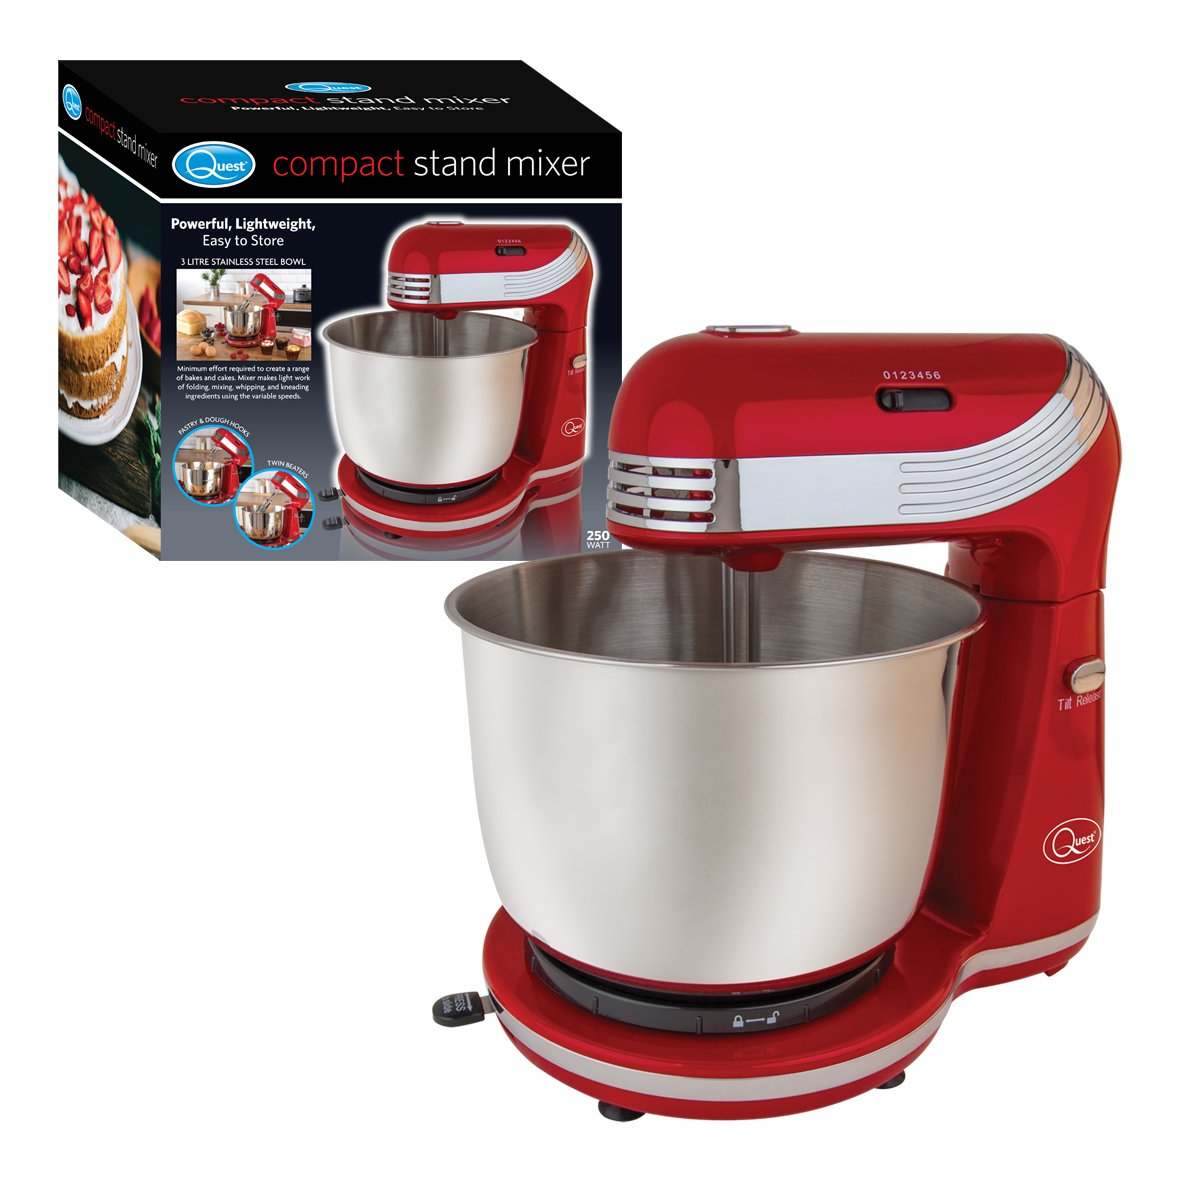 Quest 34450 3 Litre Compact 6 Speed Watt Stand Mixer with Stainless Steel Bowl and Dough Hook and Beater, 250 W, 3 Liters, Black Benross Marketing Ltd